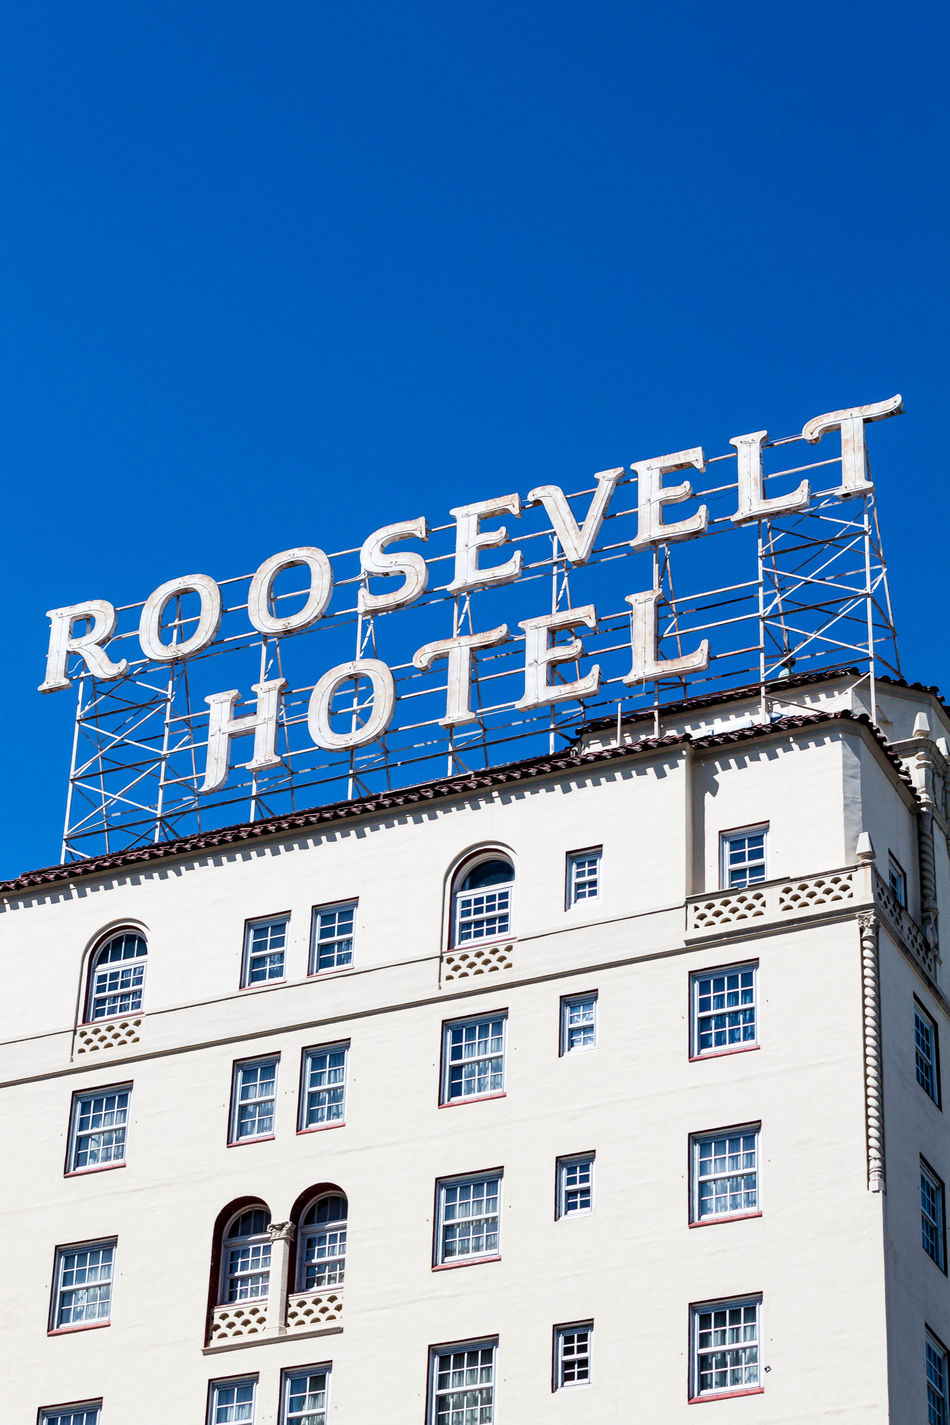 The Roosevelt Hotel in Los Angeles. Architecture Blue California City City Life City Of Angels Clear Sky Famous Hotel Famous Place Hollywood Hotel Los Angeles, California Los Ángeles Losangeles No People Roosevelt Hotel, Los Angeles Travel Photo Travel Photographer Travel Photography Travel Photos West Coast